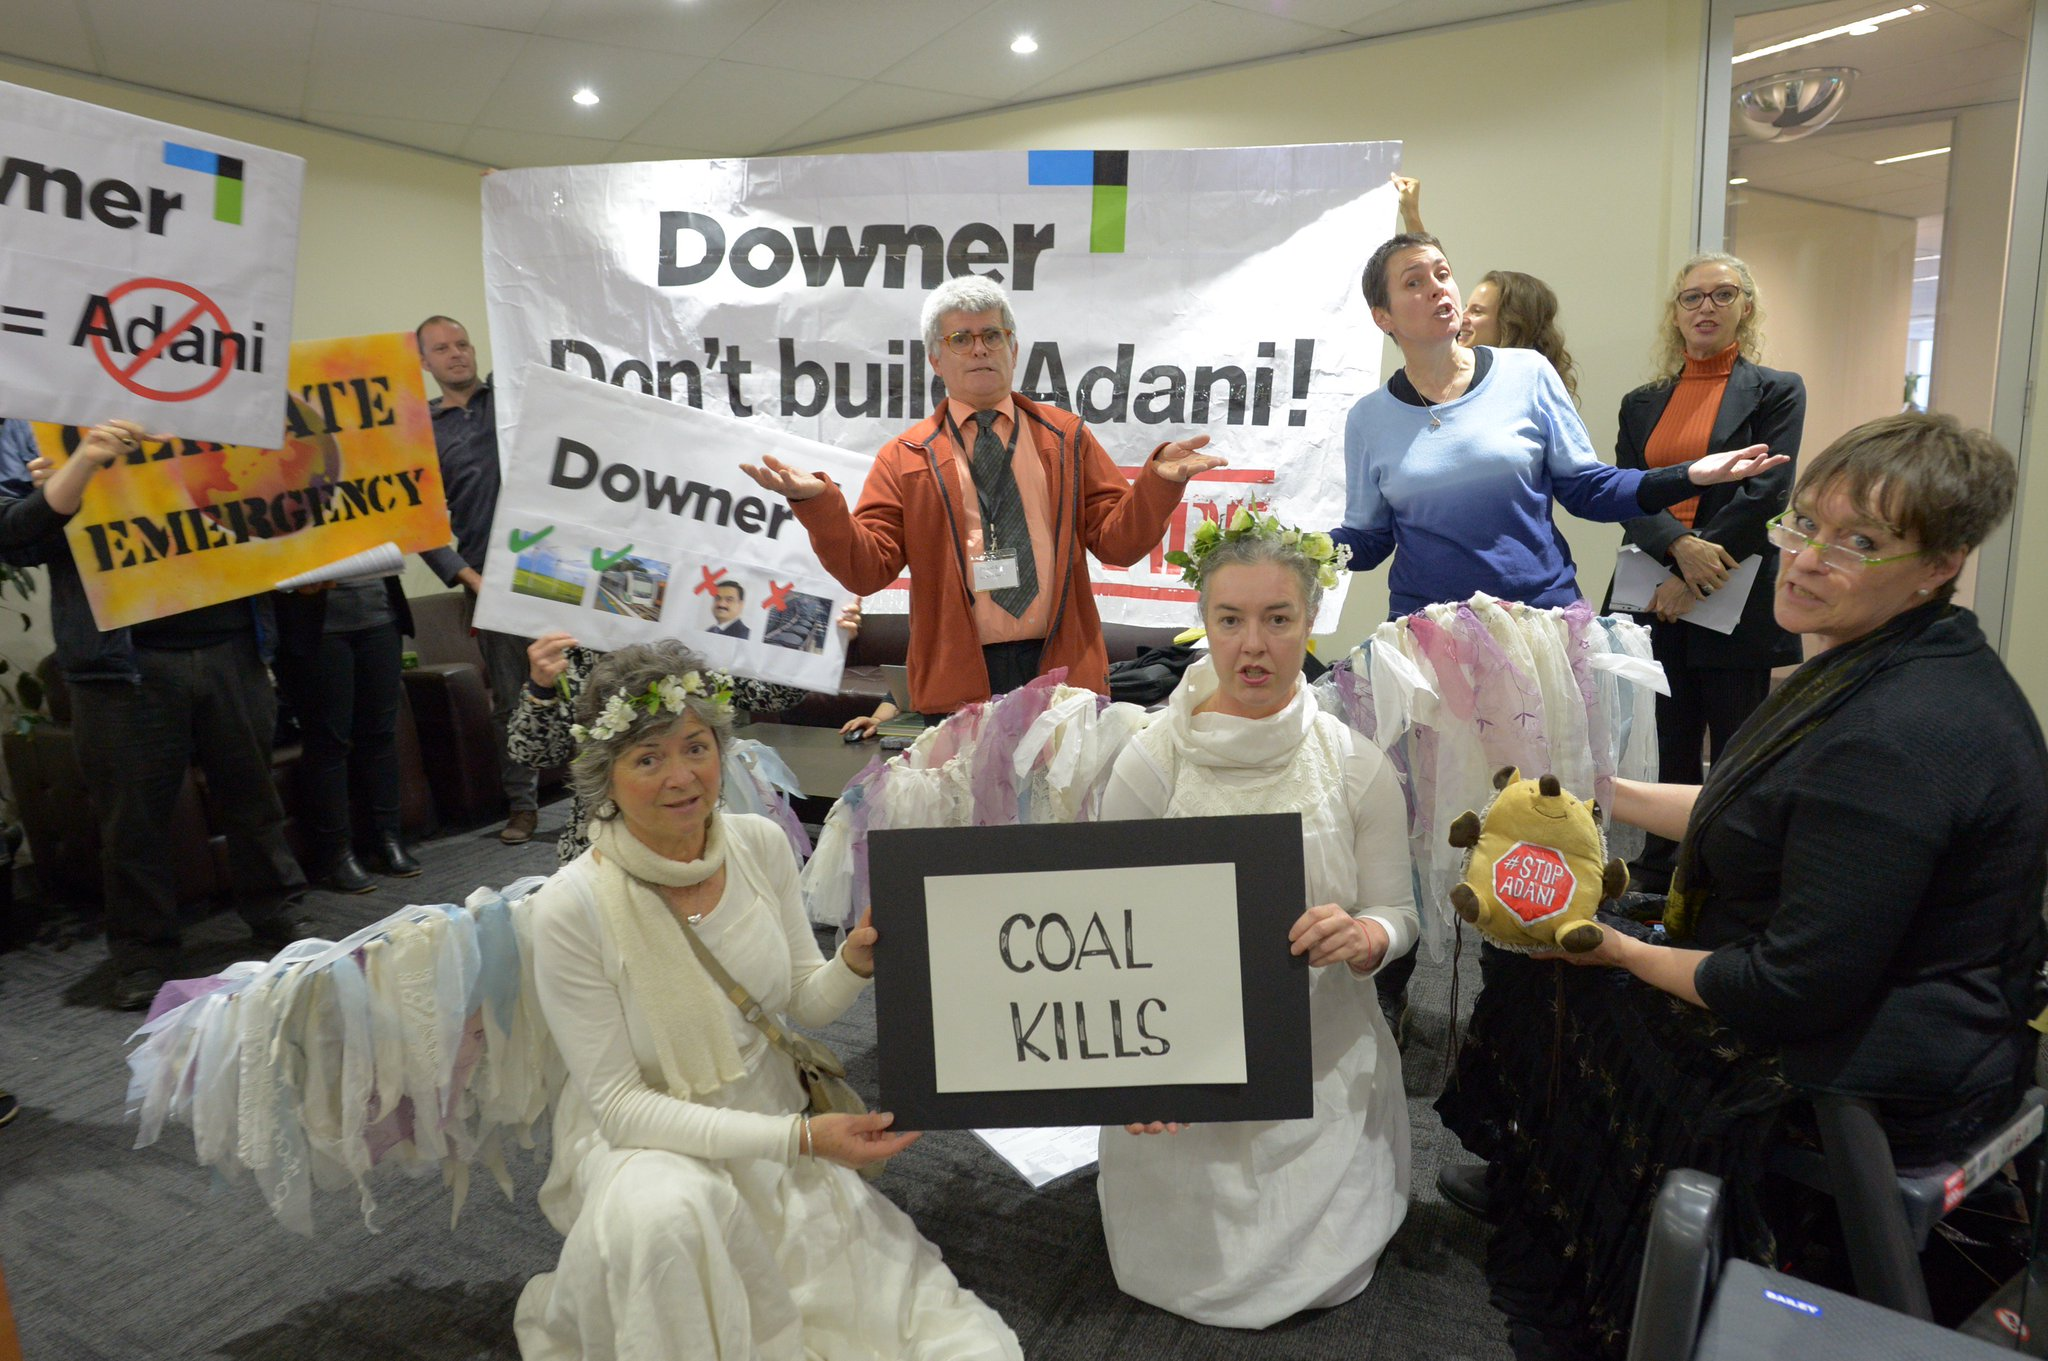 """""""You knew, Downer, you knew"""" So tell us what did you do? Would building planet destroying mine work with Downer zero harm policy #StopAdani https://t.co/nTx8iiGIYu"""